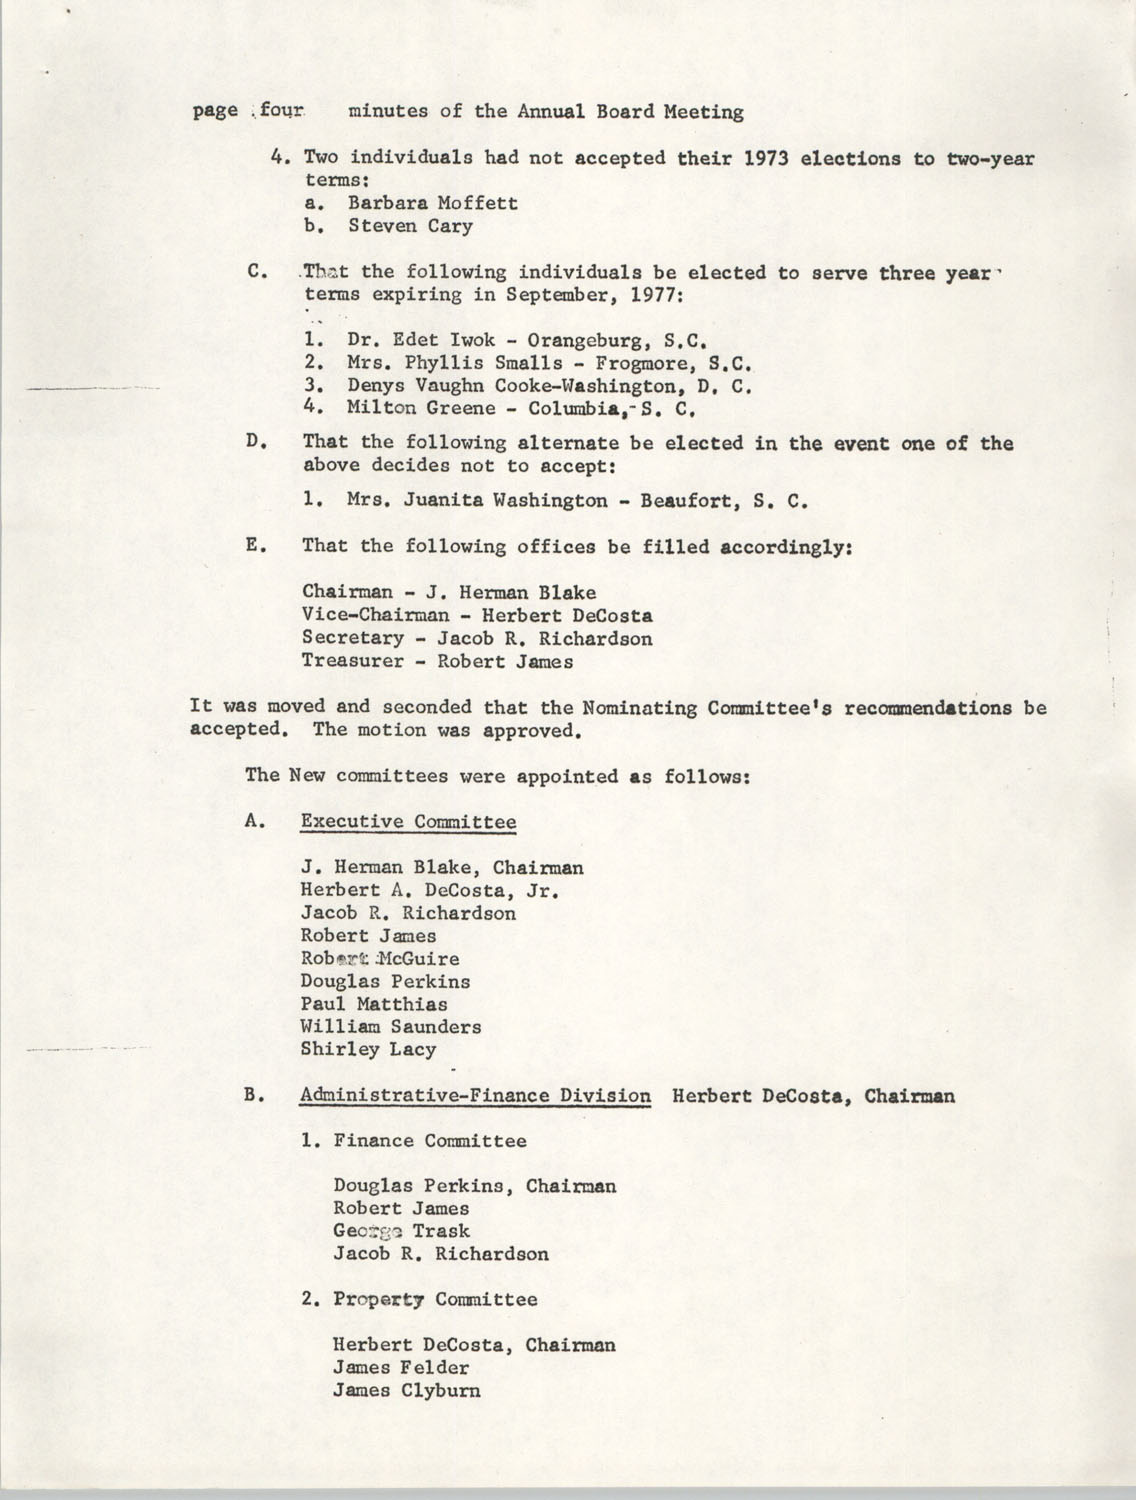 Minutes, Penn Community Services, September 20-21, 1974, Page 4